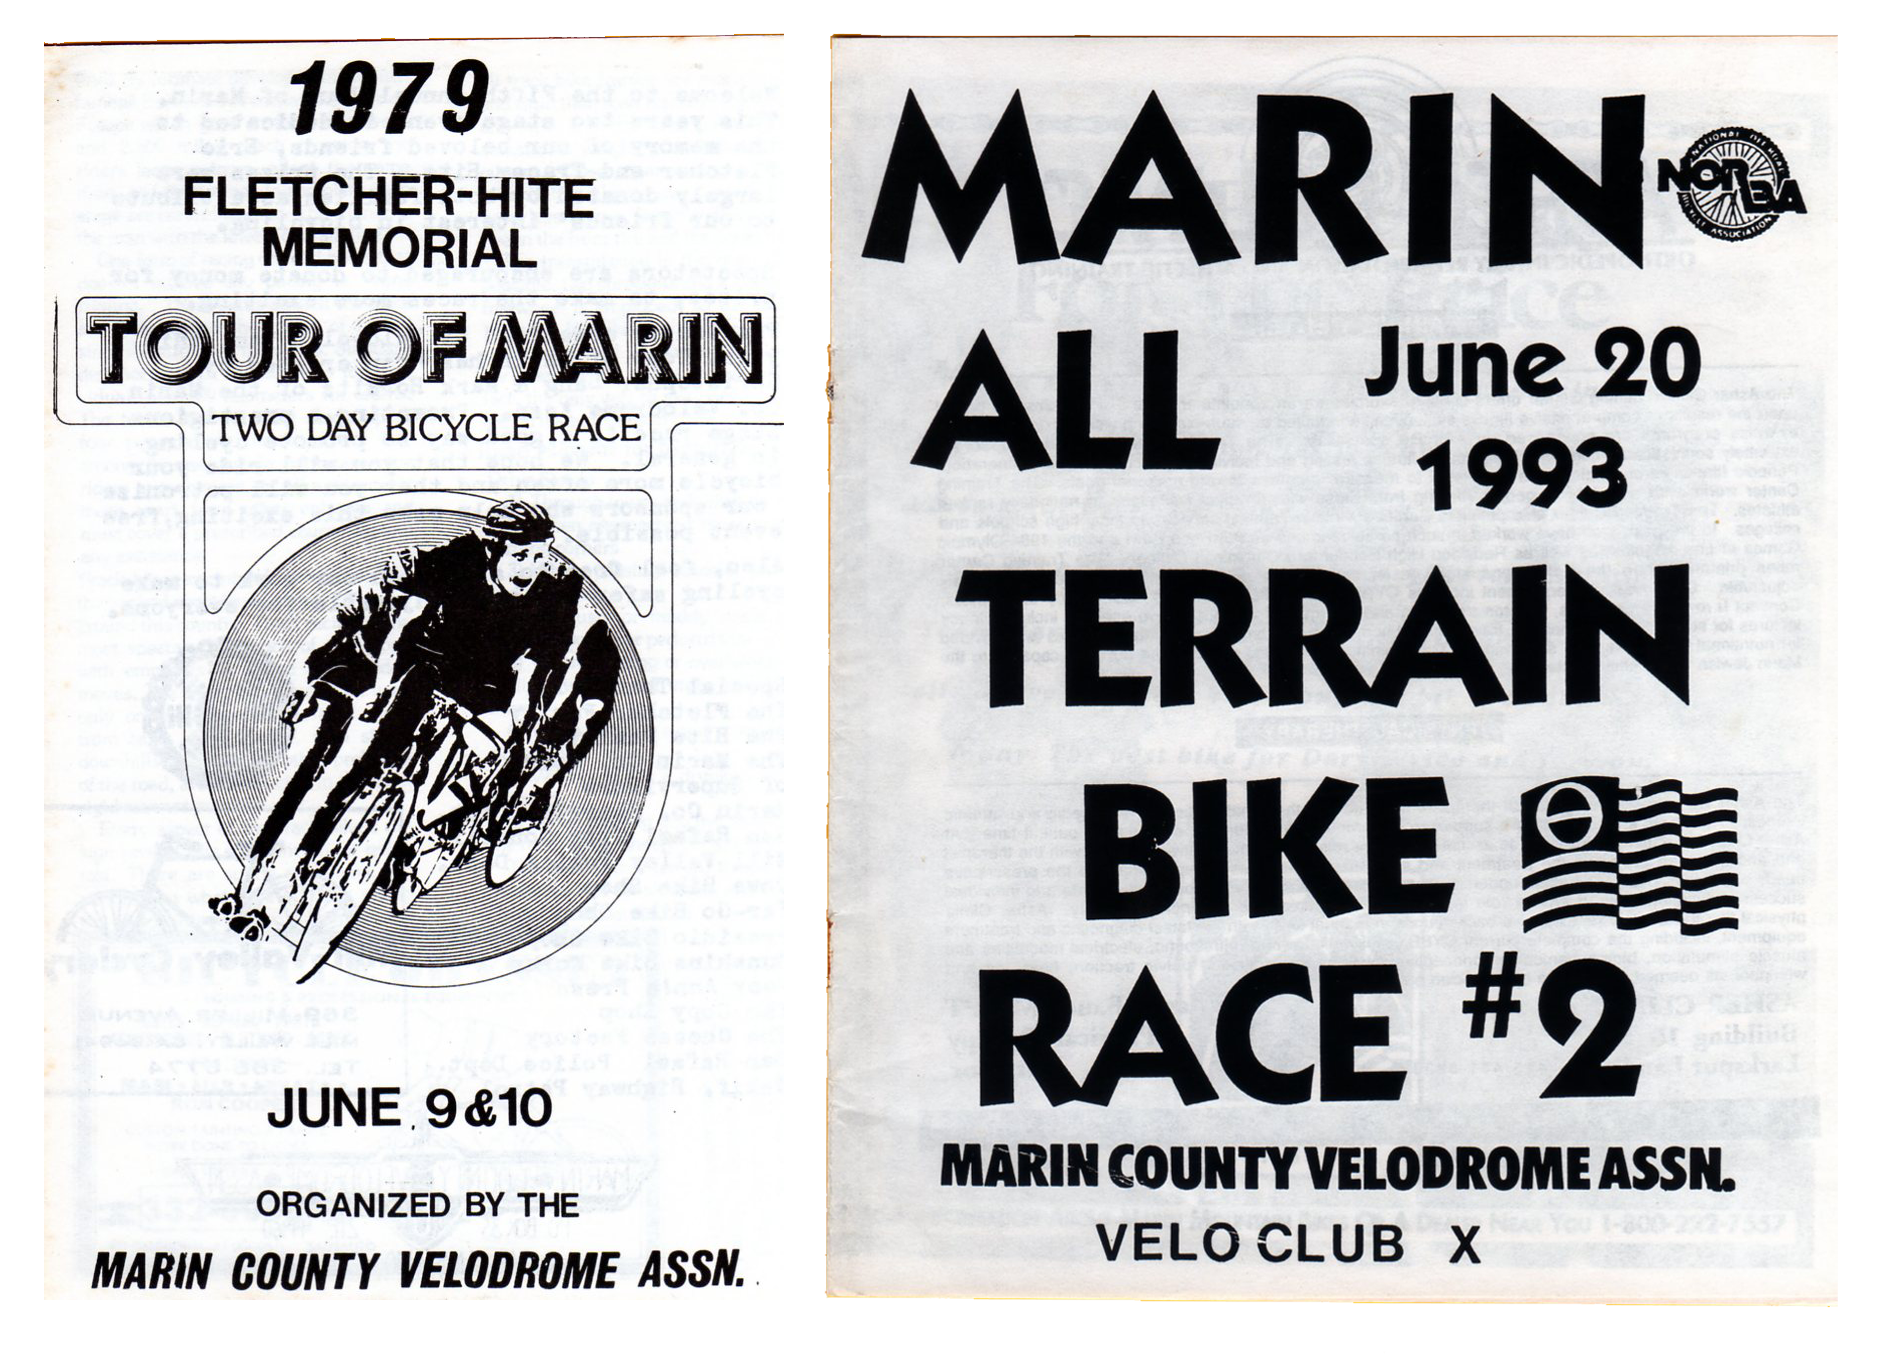 Marin All Terrain & Tour of M